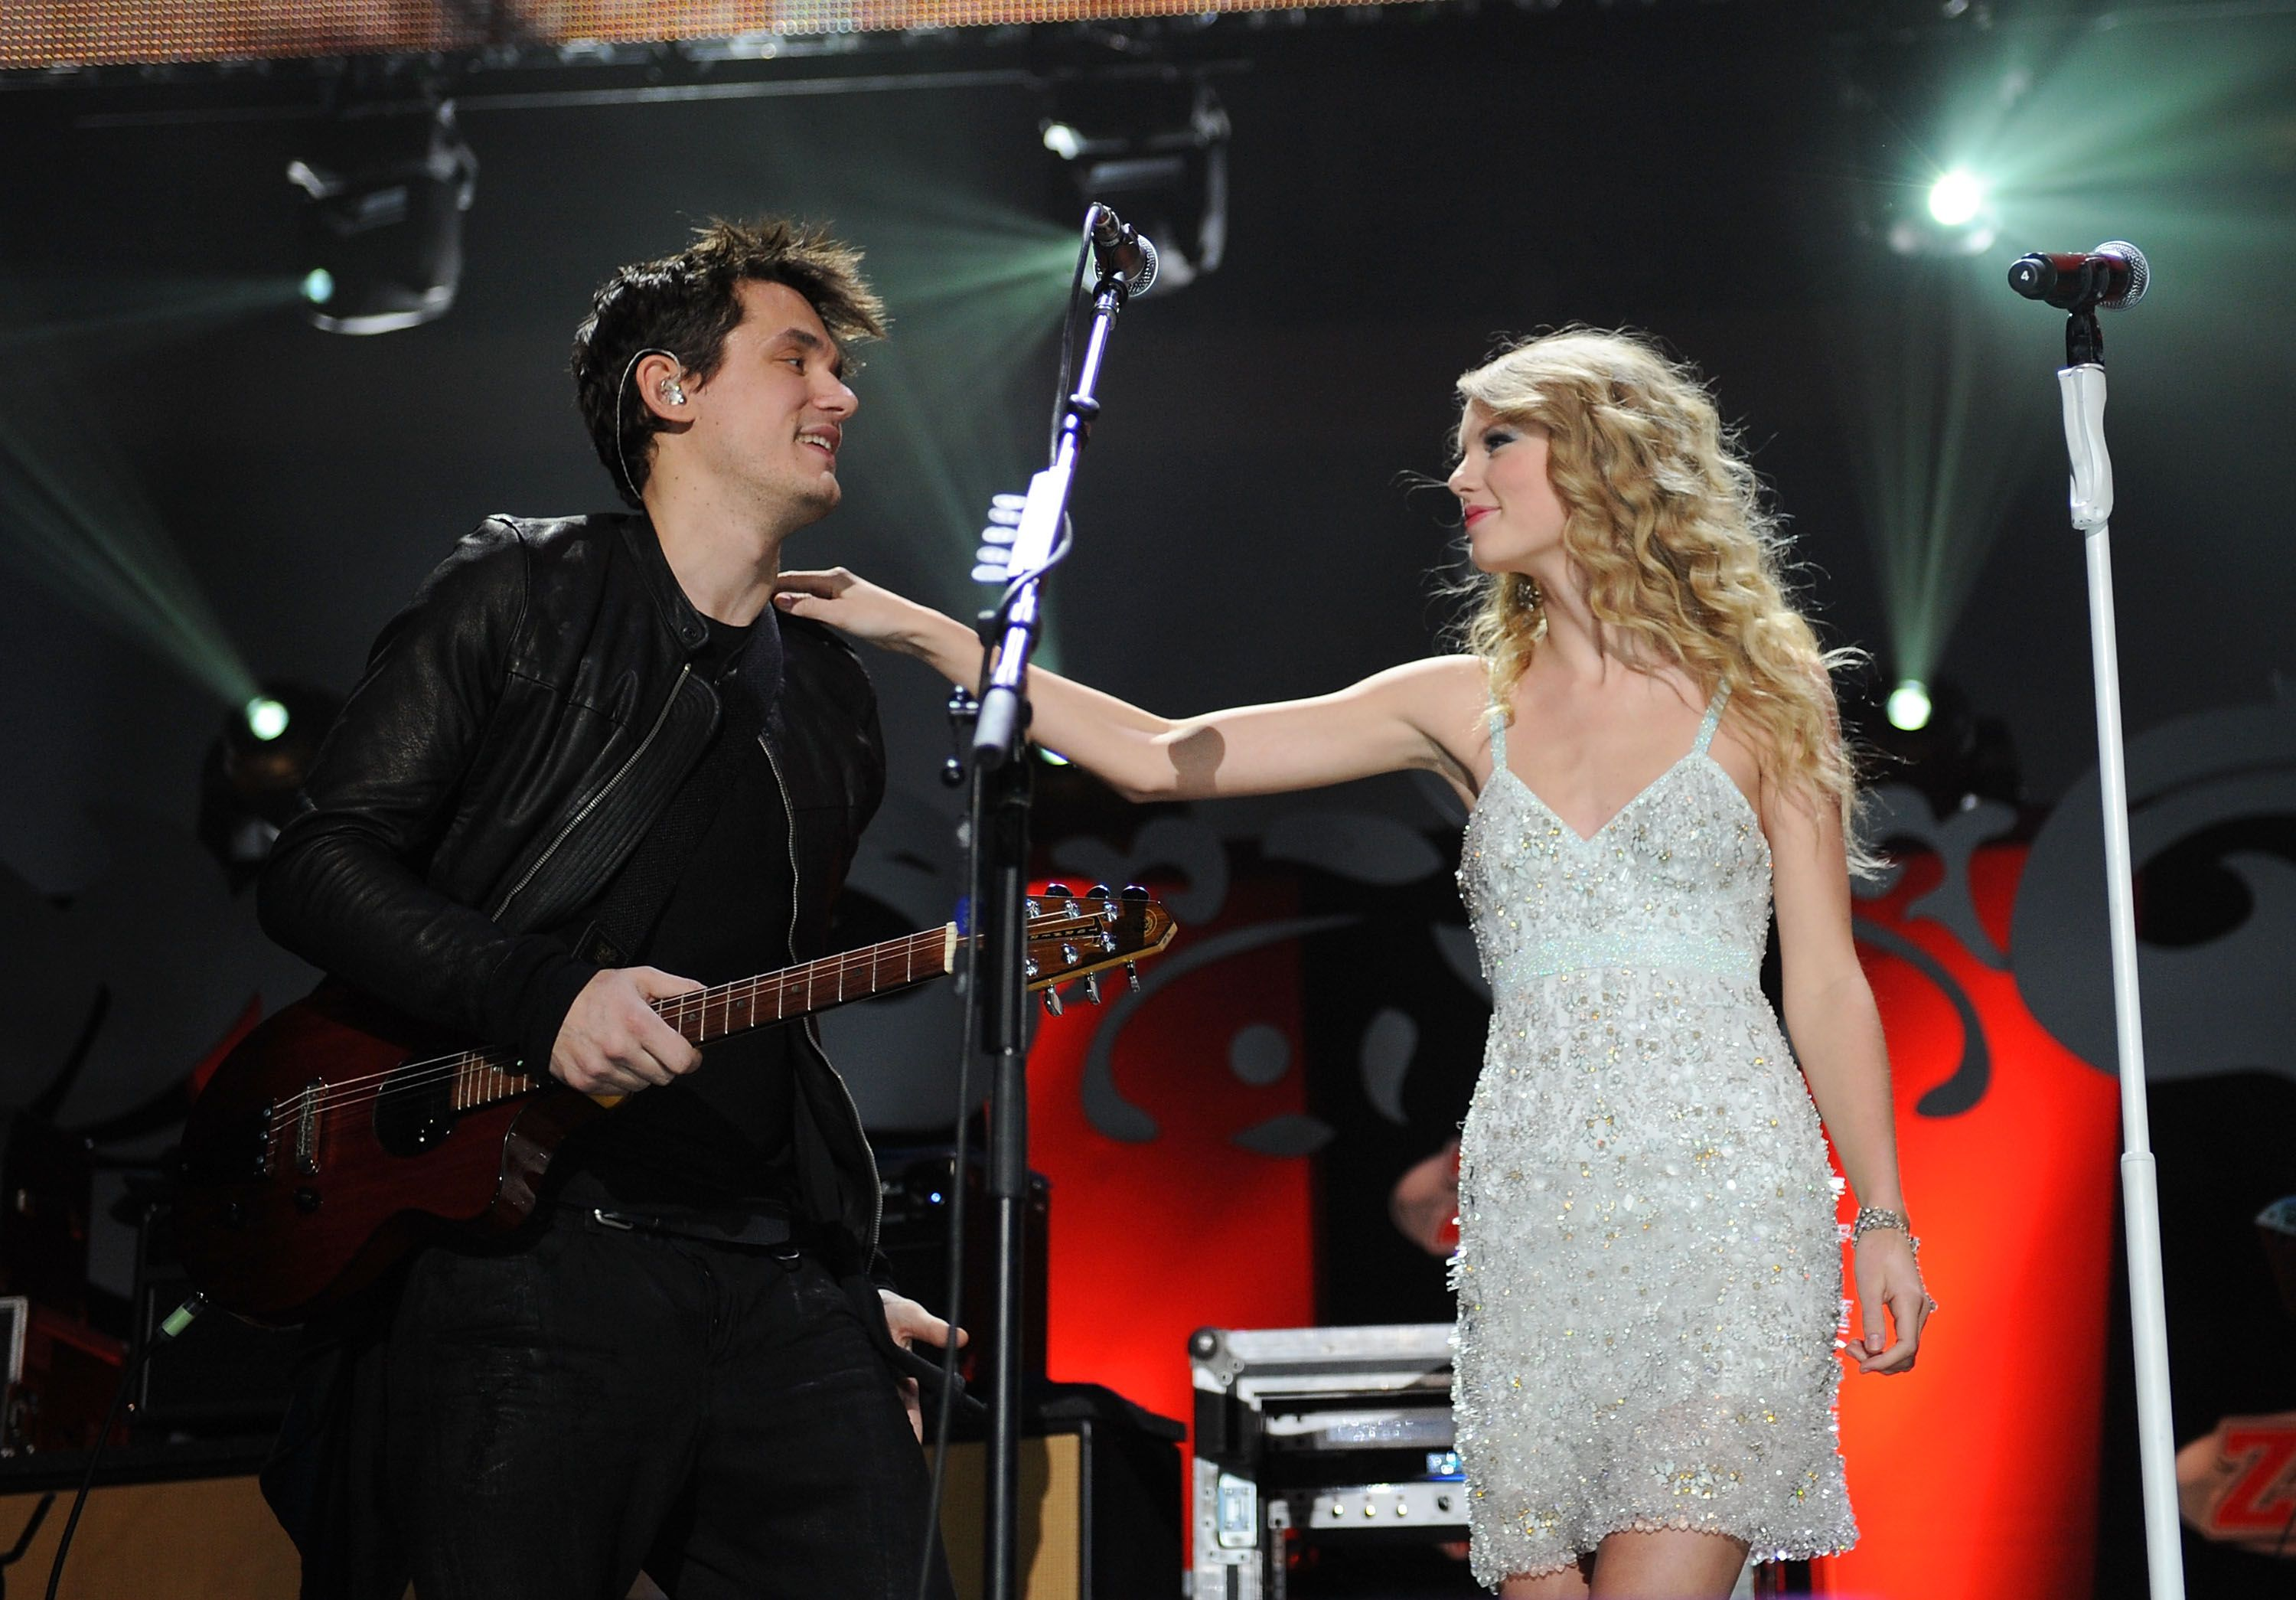 No, John Mayer did not throw shade at Taylor Swift on her birthday